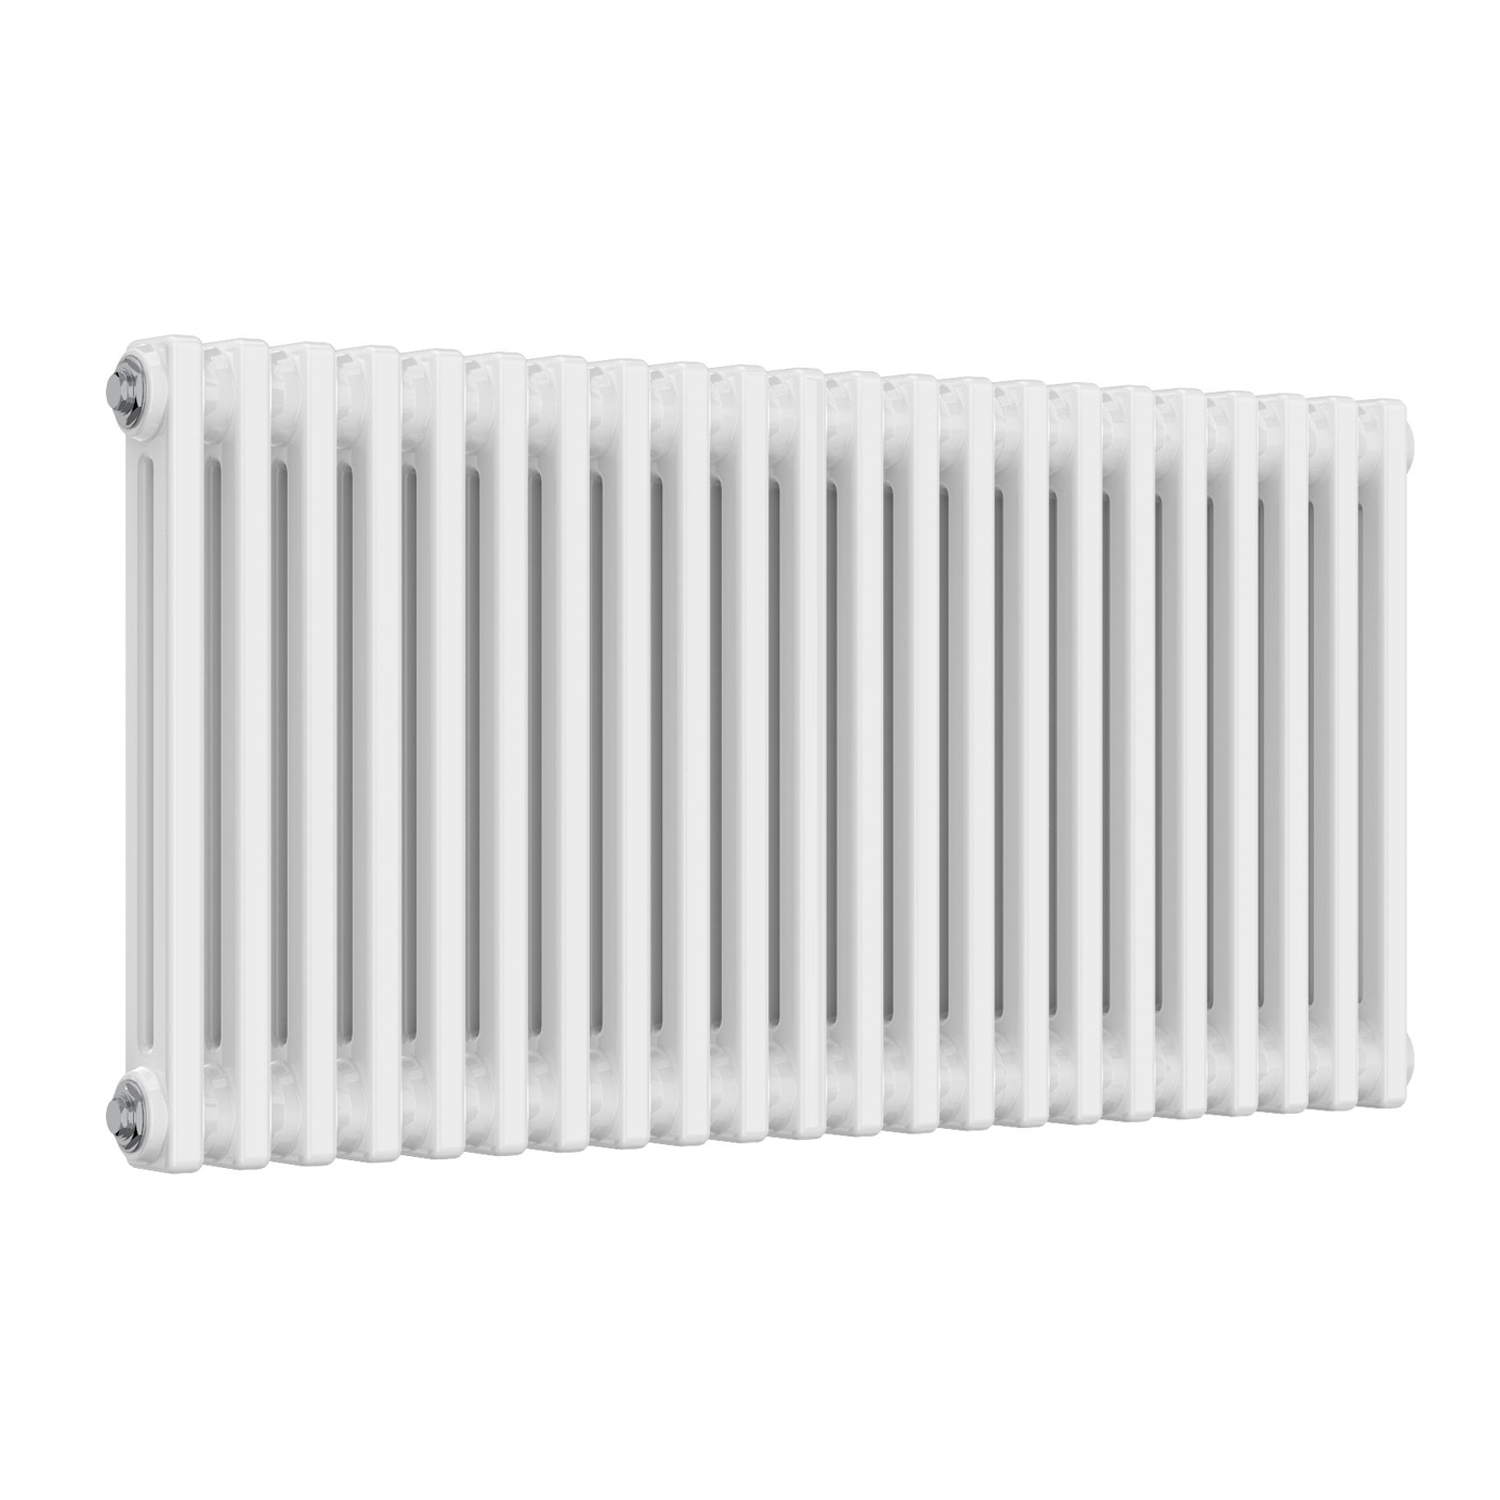 Stelrad Radical Radiator 600mm H x 500mm W Single Convector 10mm Straight TRV